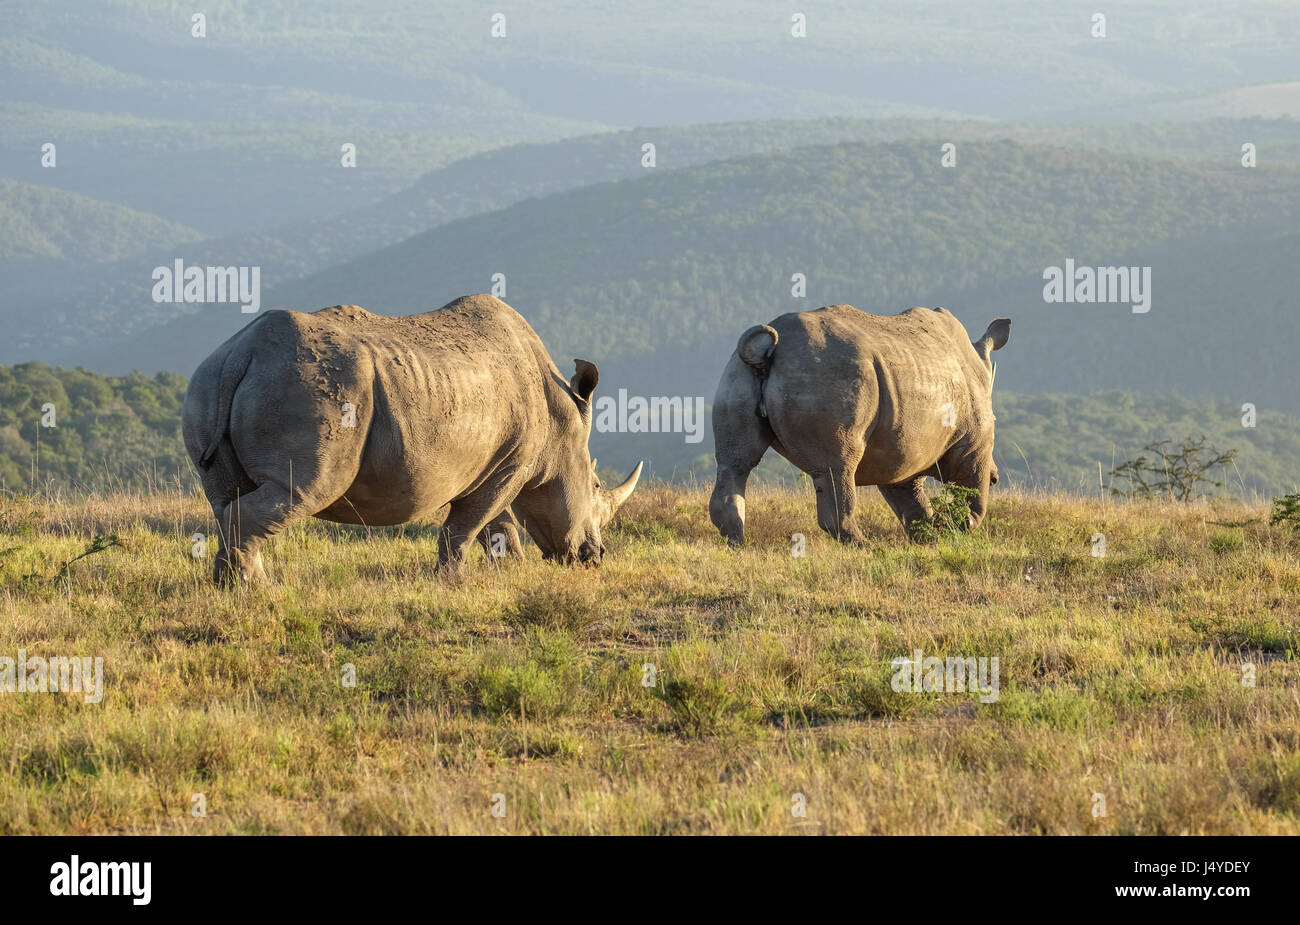 Two White Rhinos walking off into the rising sun on the African Savannah or grass plains, peaceful and blissfully - Stock Image